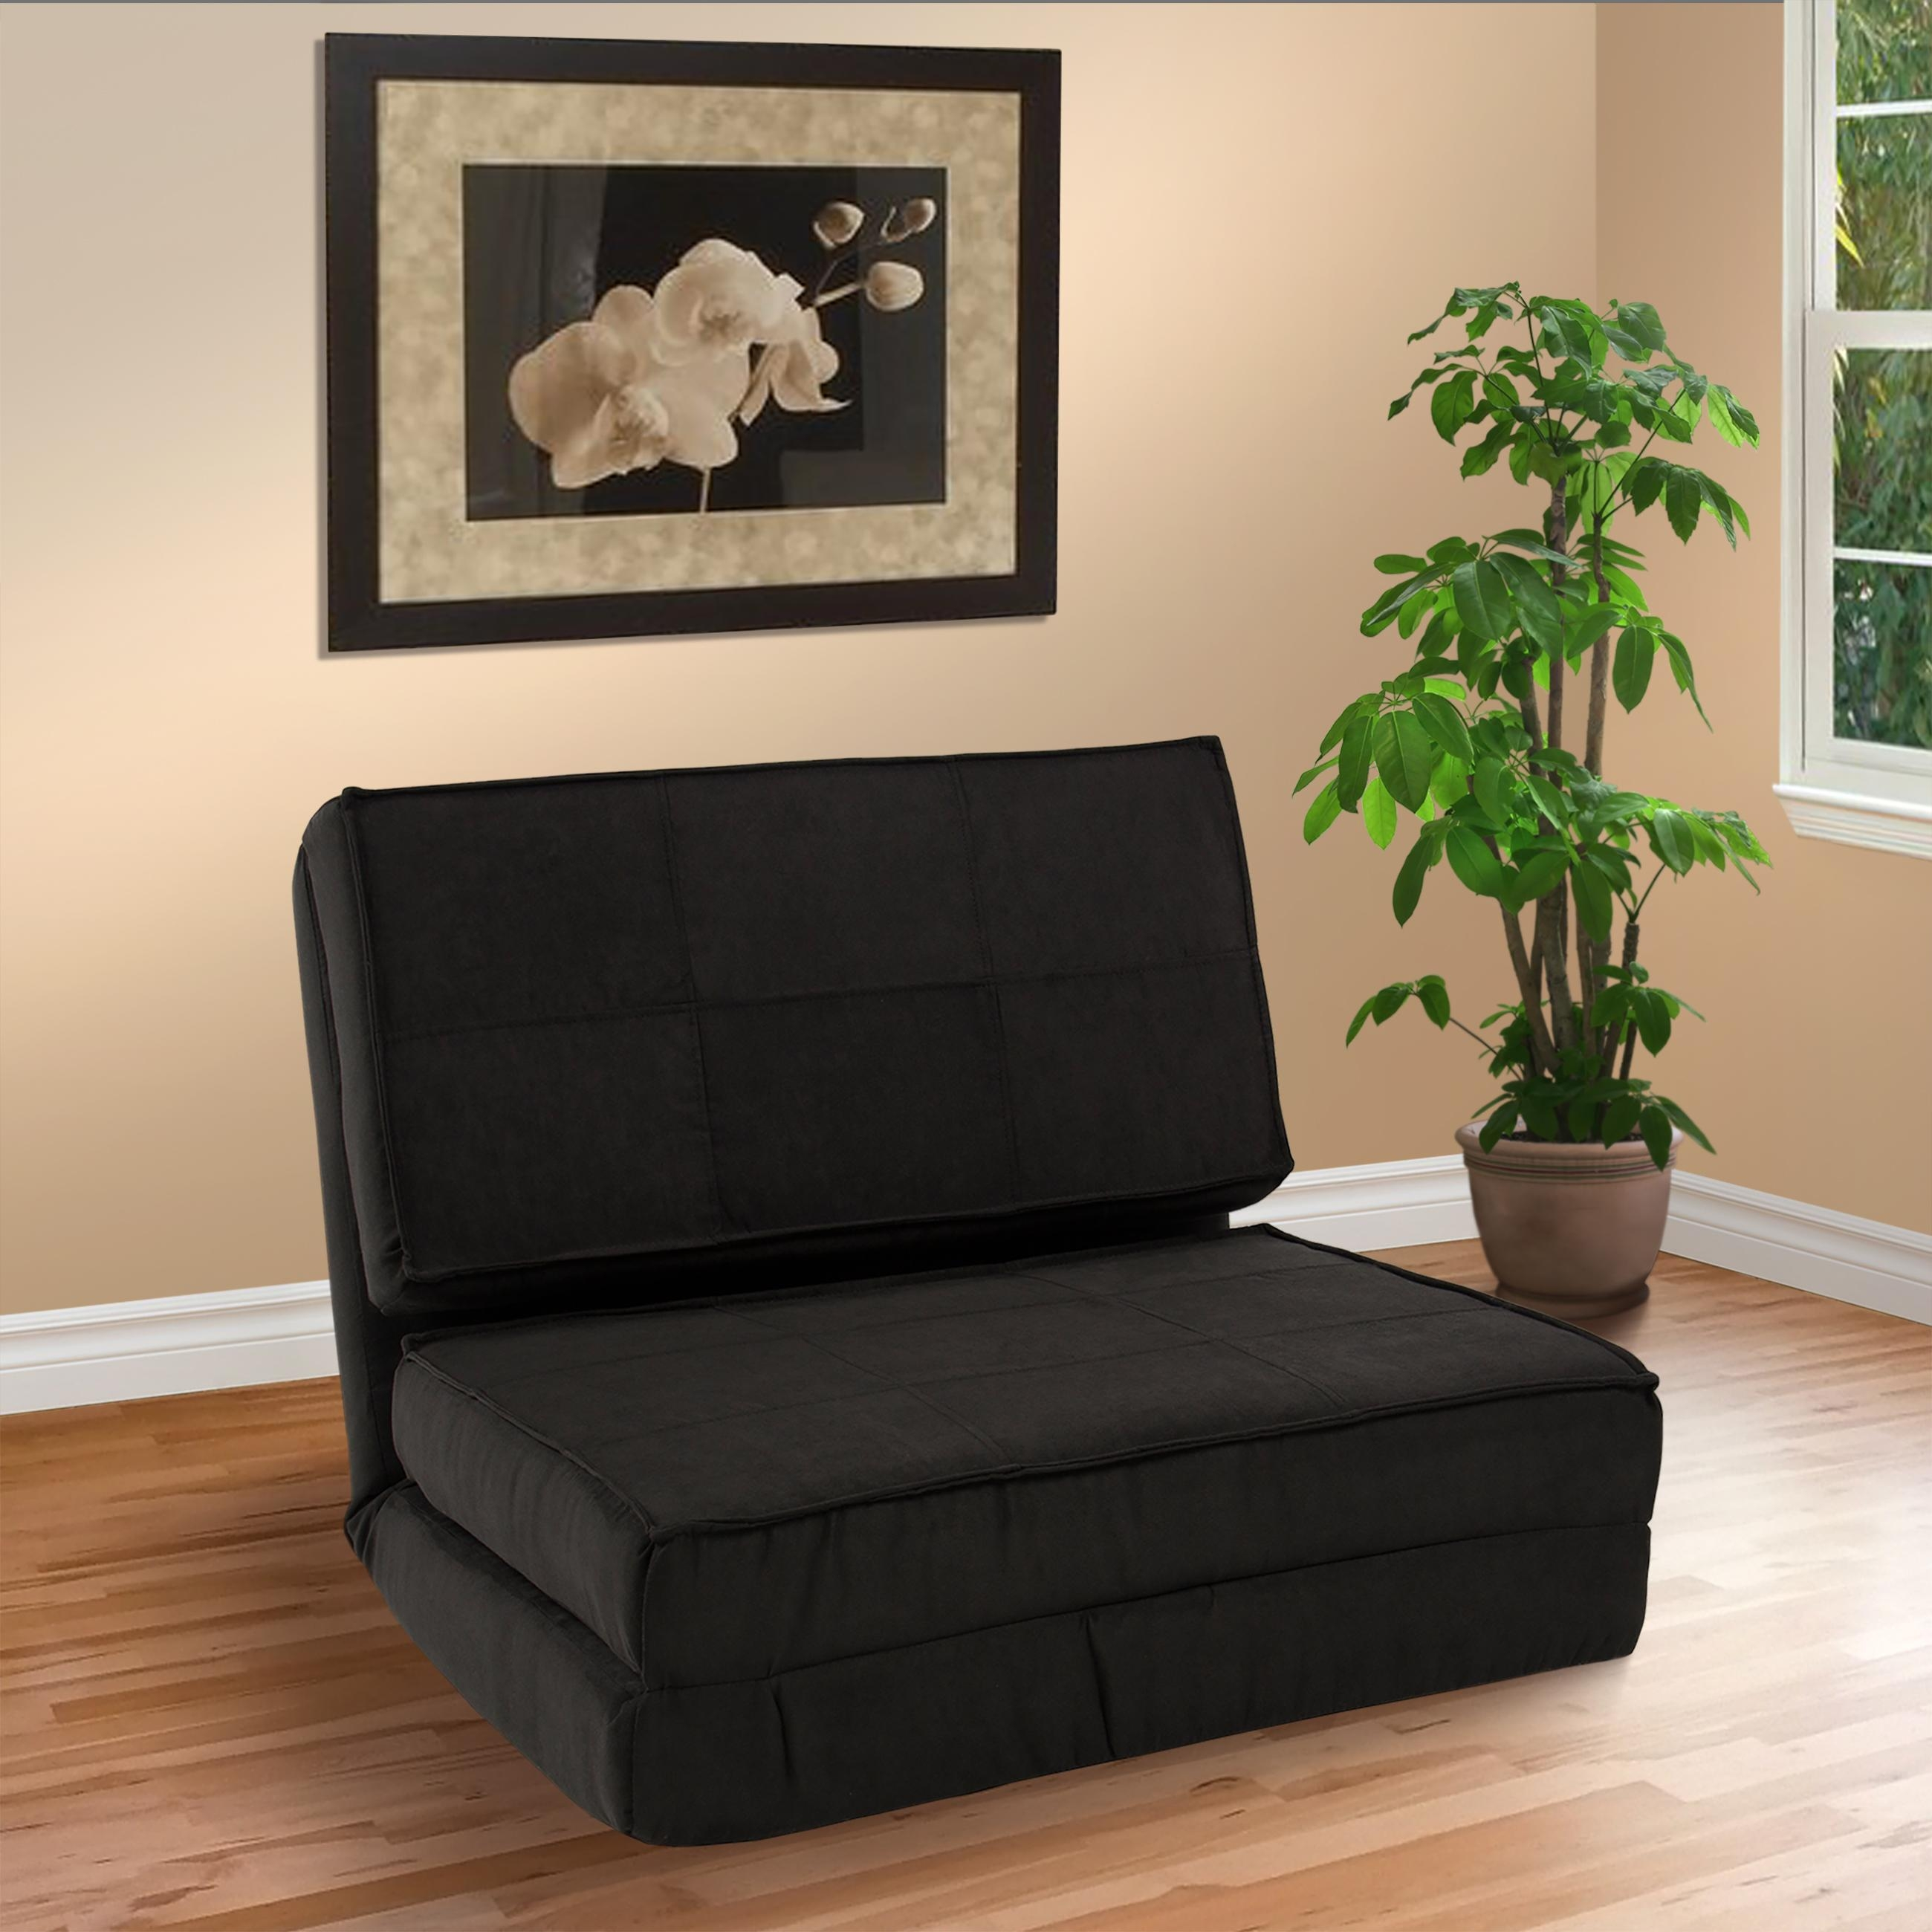 Best Choice Products Convertible Sleeper Chair Bed (Black Inside Fold Up Sofa Chairs (View 11 of 22)